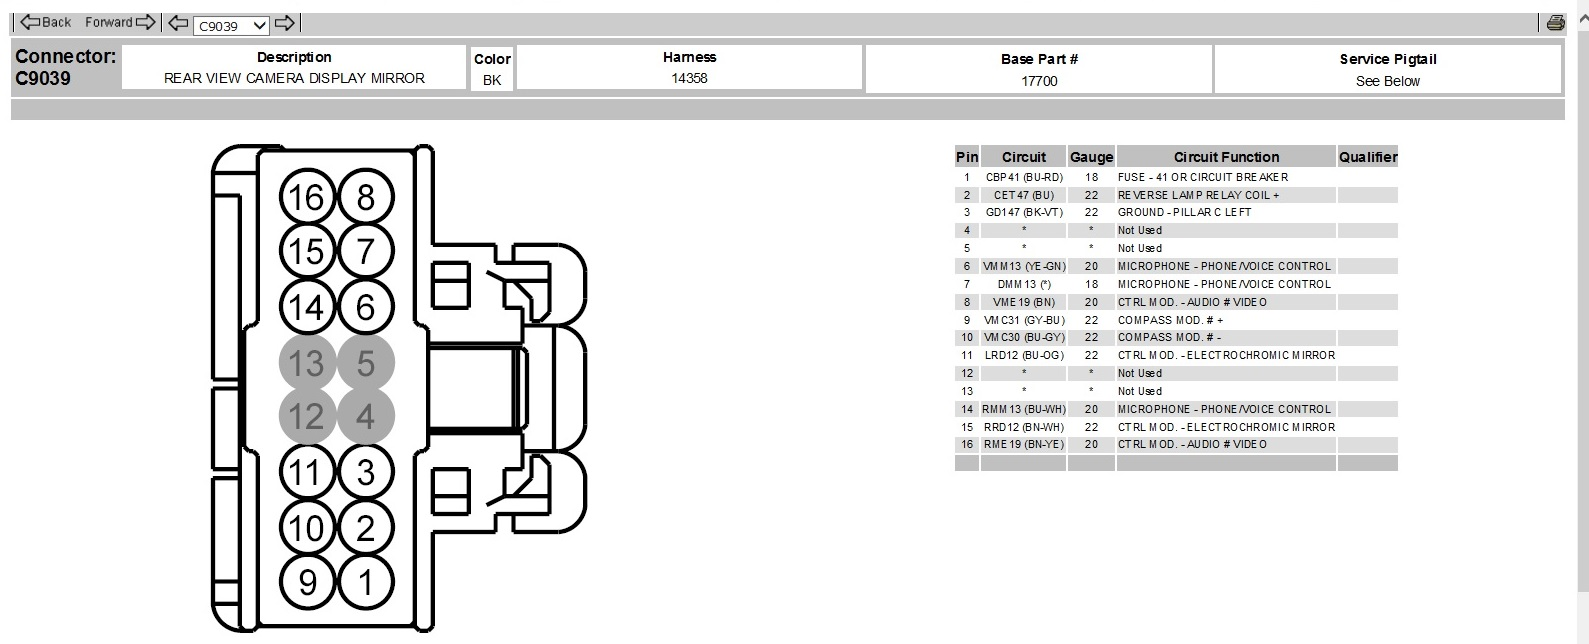 2013 Chevy Cruze Fuse Box Diagram. Chevy. Auto Fuse Box